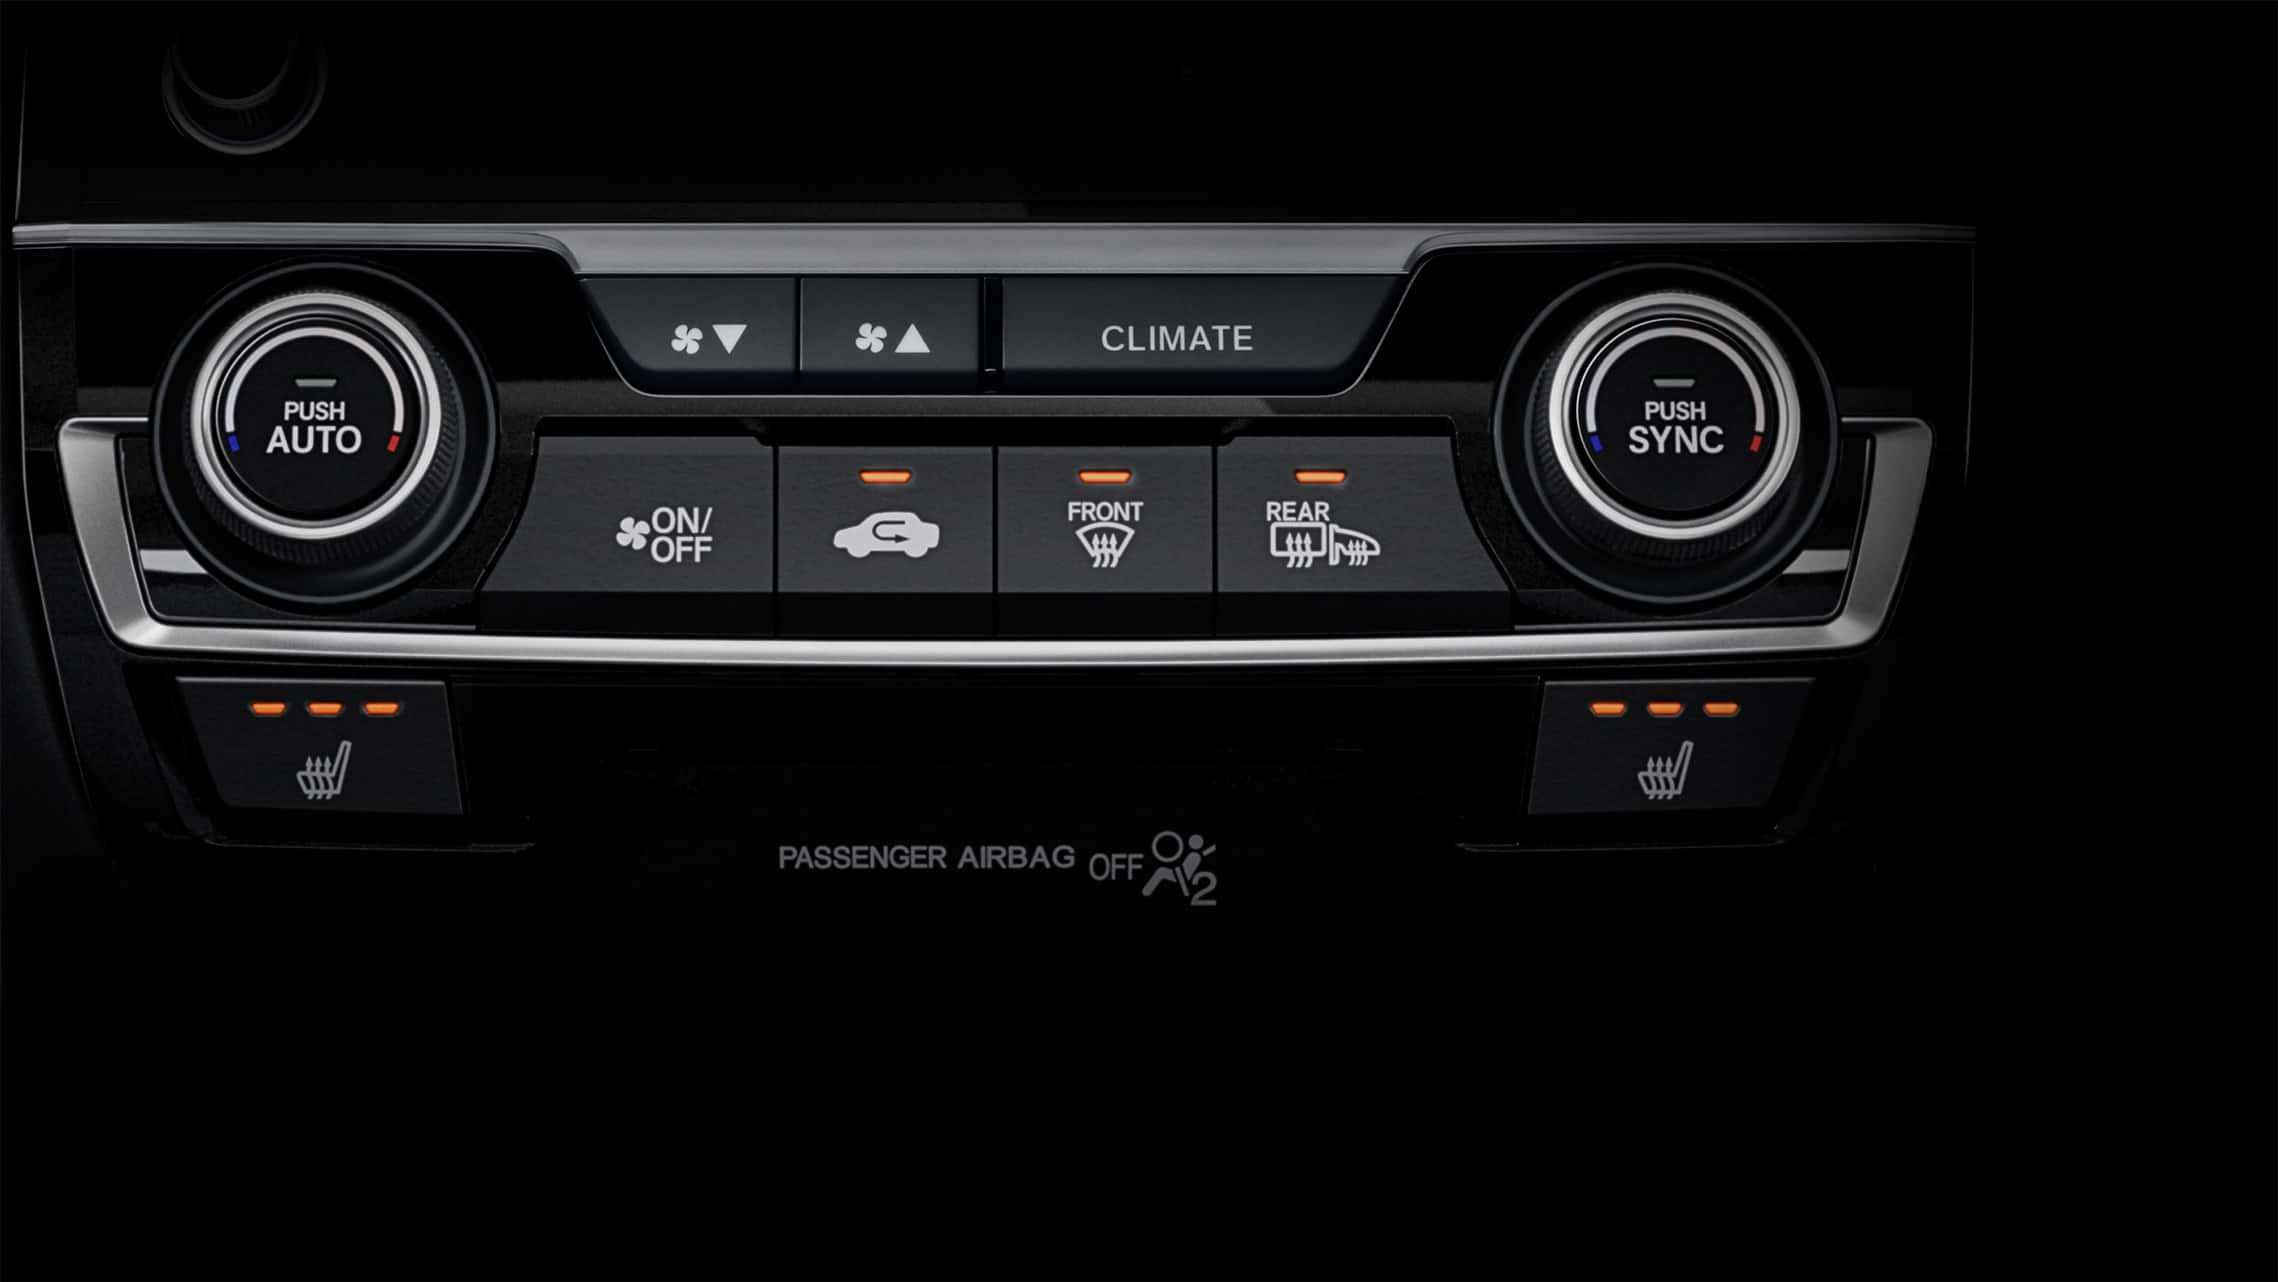 Detail of heated seat controls in the 2021 Honda Civic Sport Touring Hatchback.